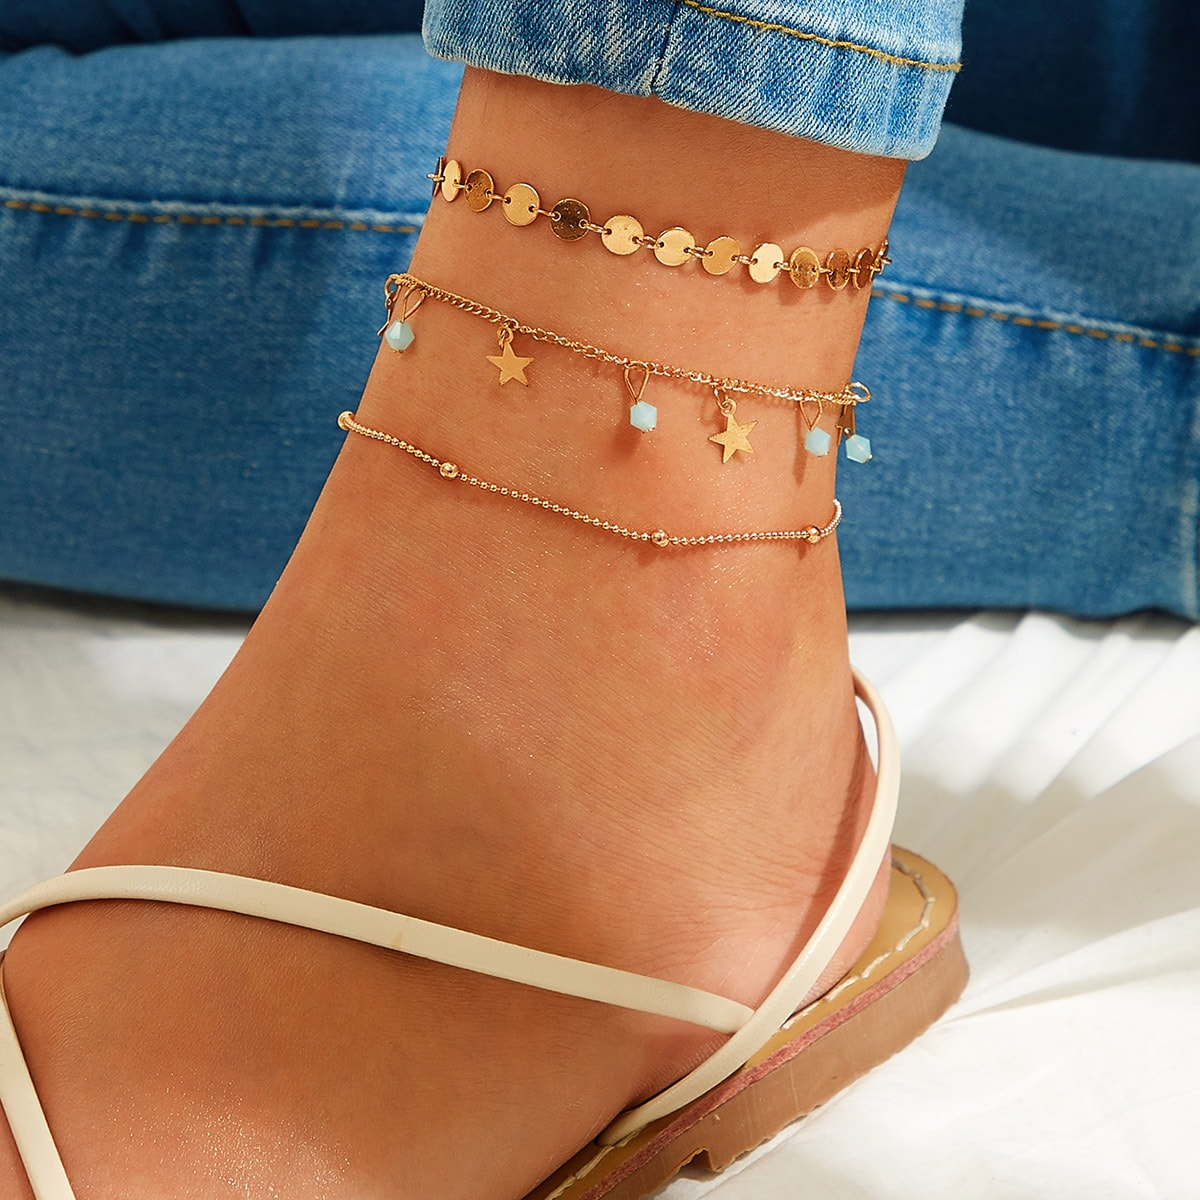 Star & Disc Decor Chain Anklet 3pcs in Gold by ROMWE on GOOFASH